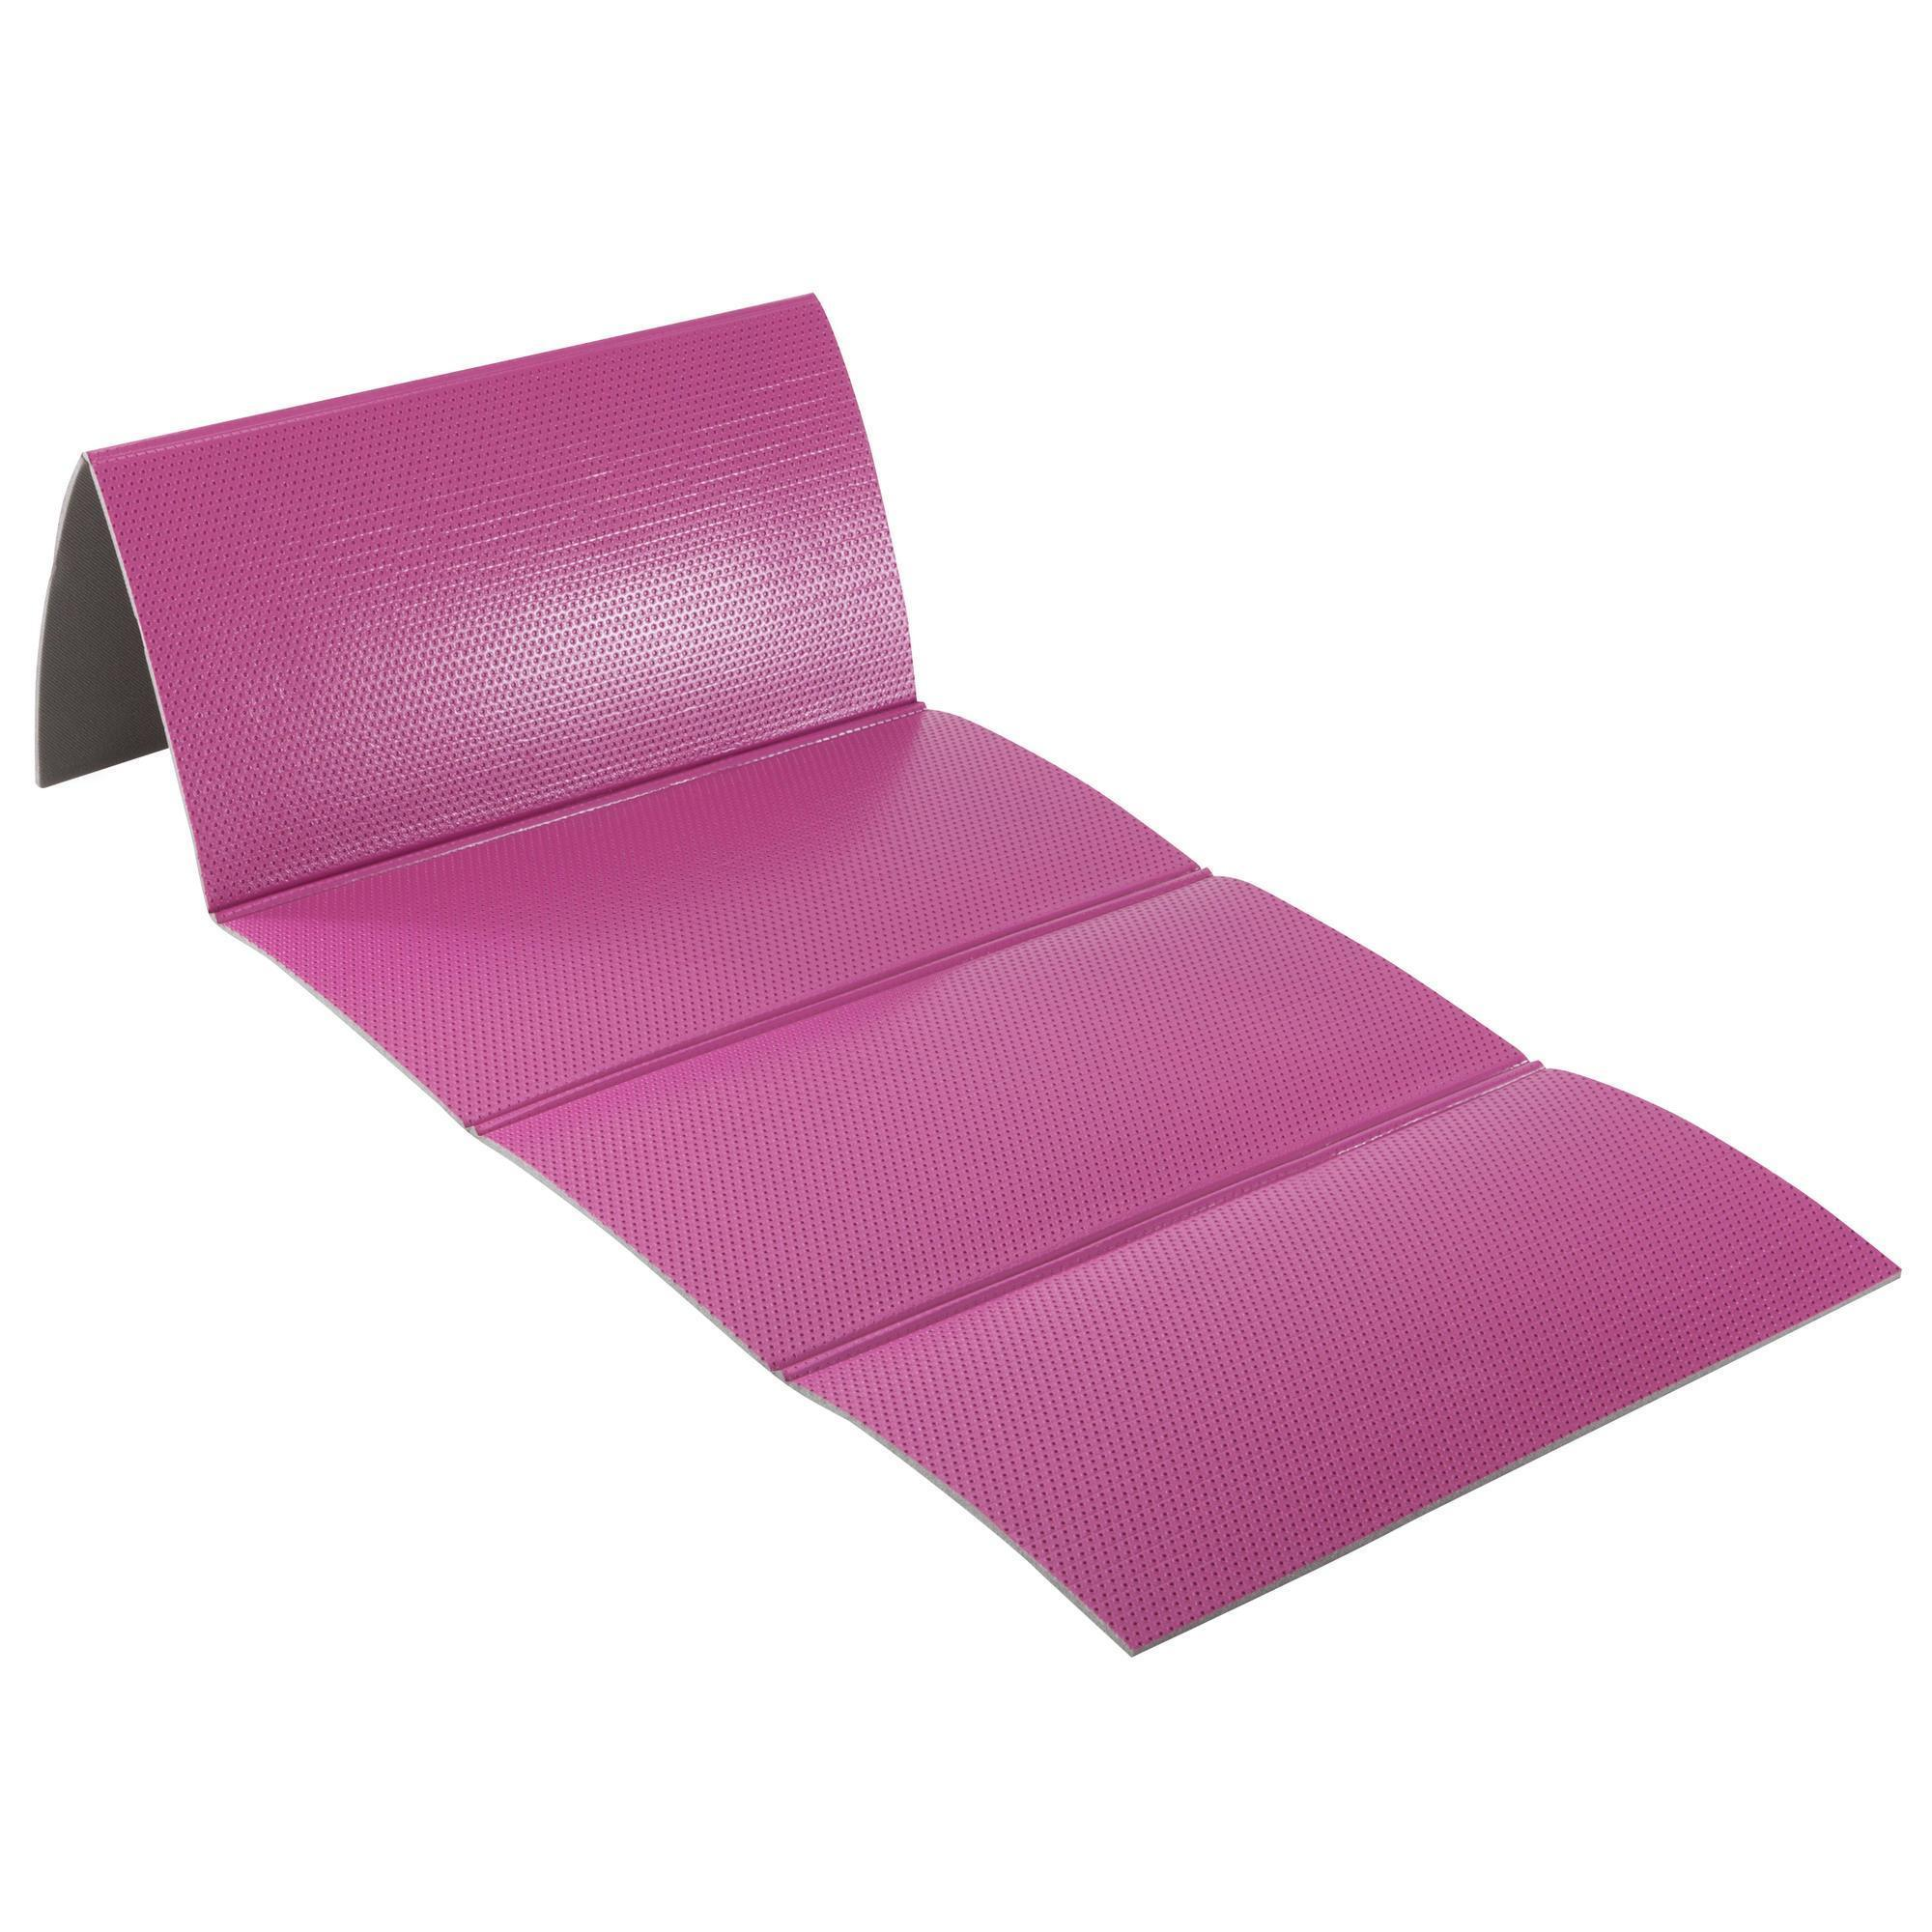 tapis de sol pliable 520 gym stretching rose domyos by. Black Bedroom Furniture Sets. Home Design Ideas